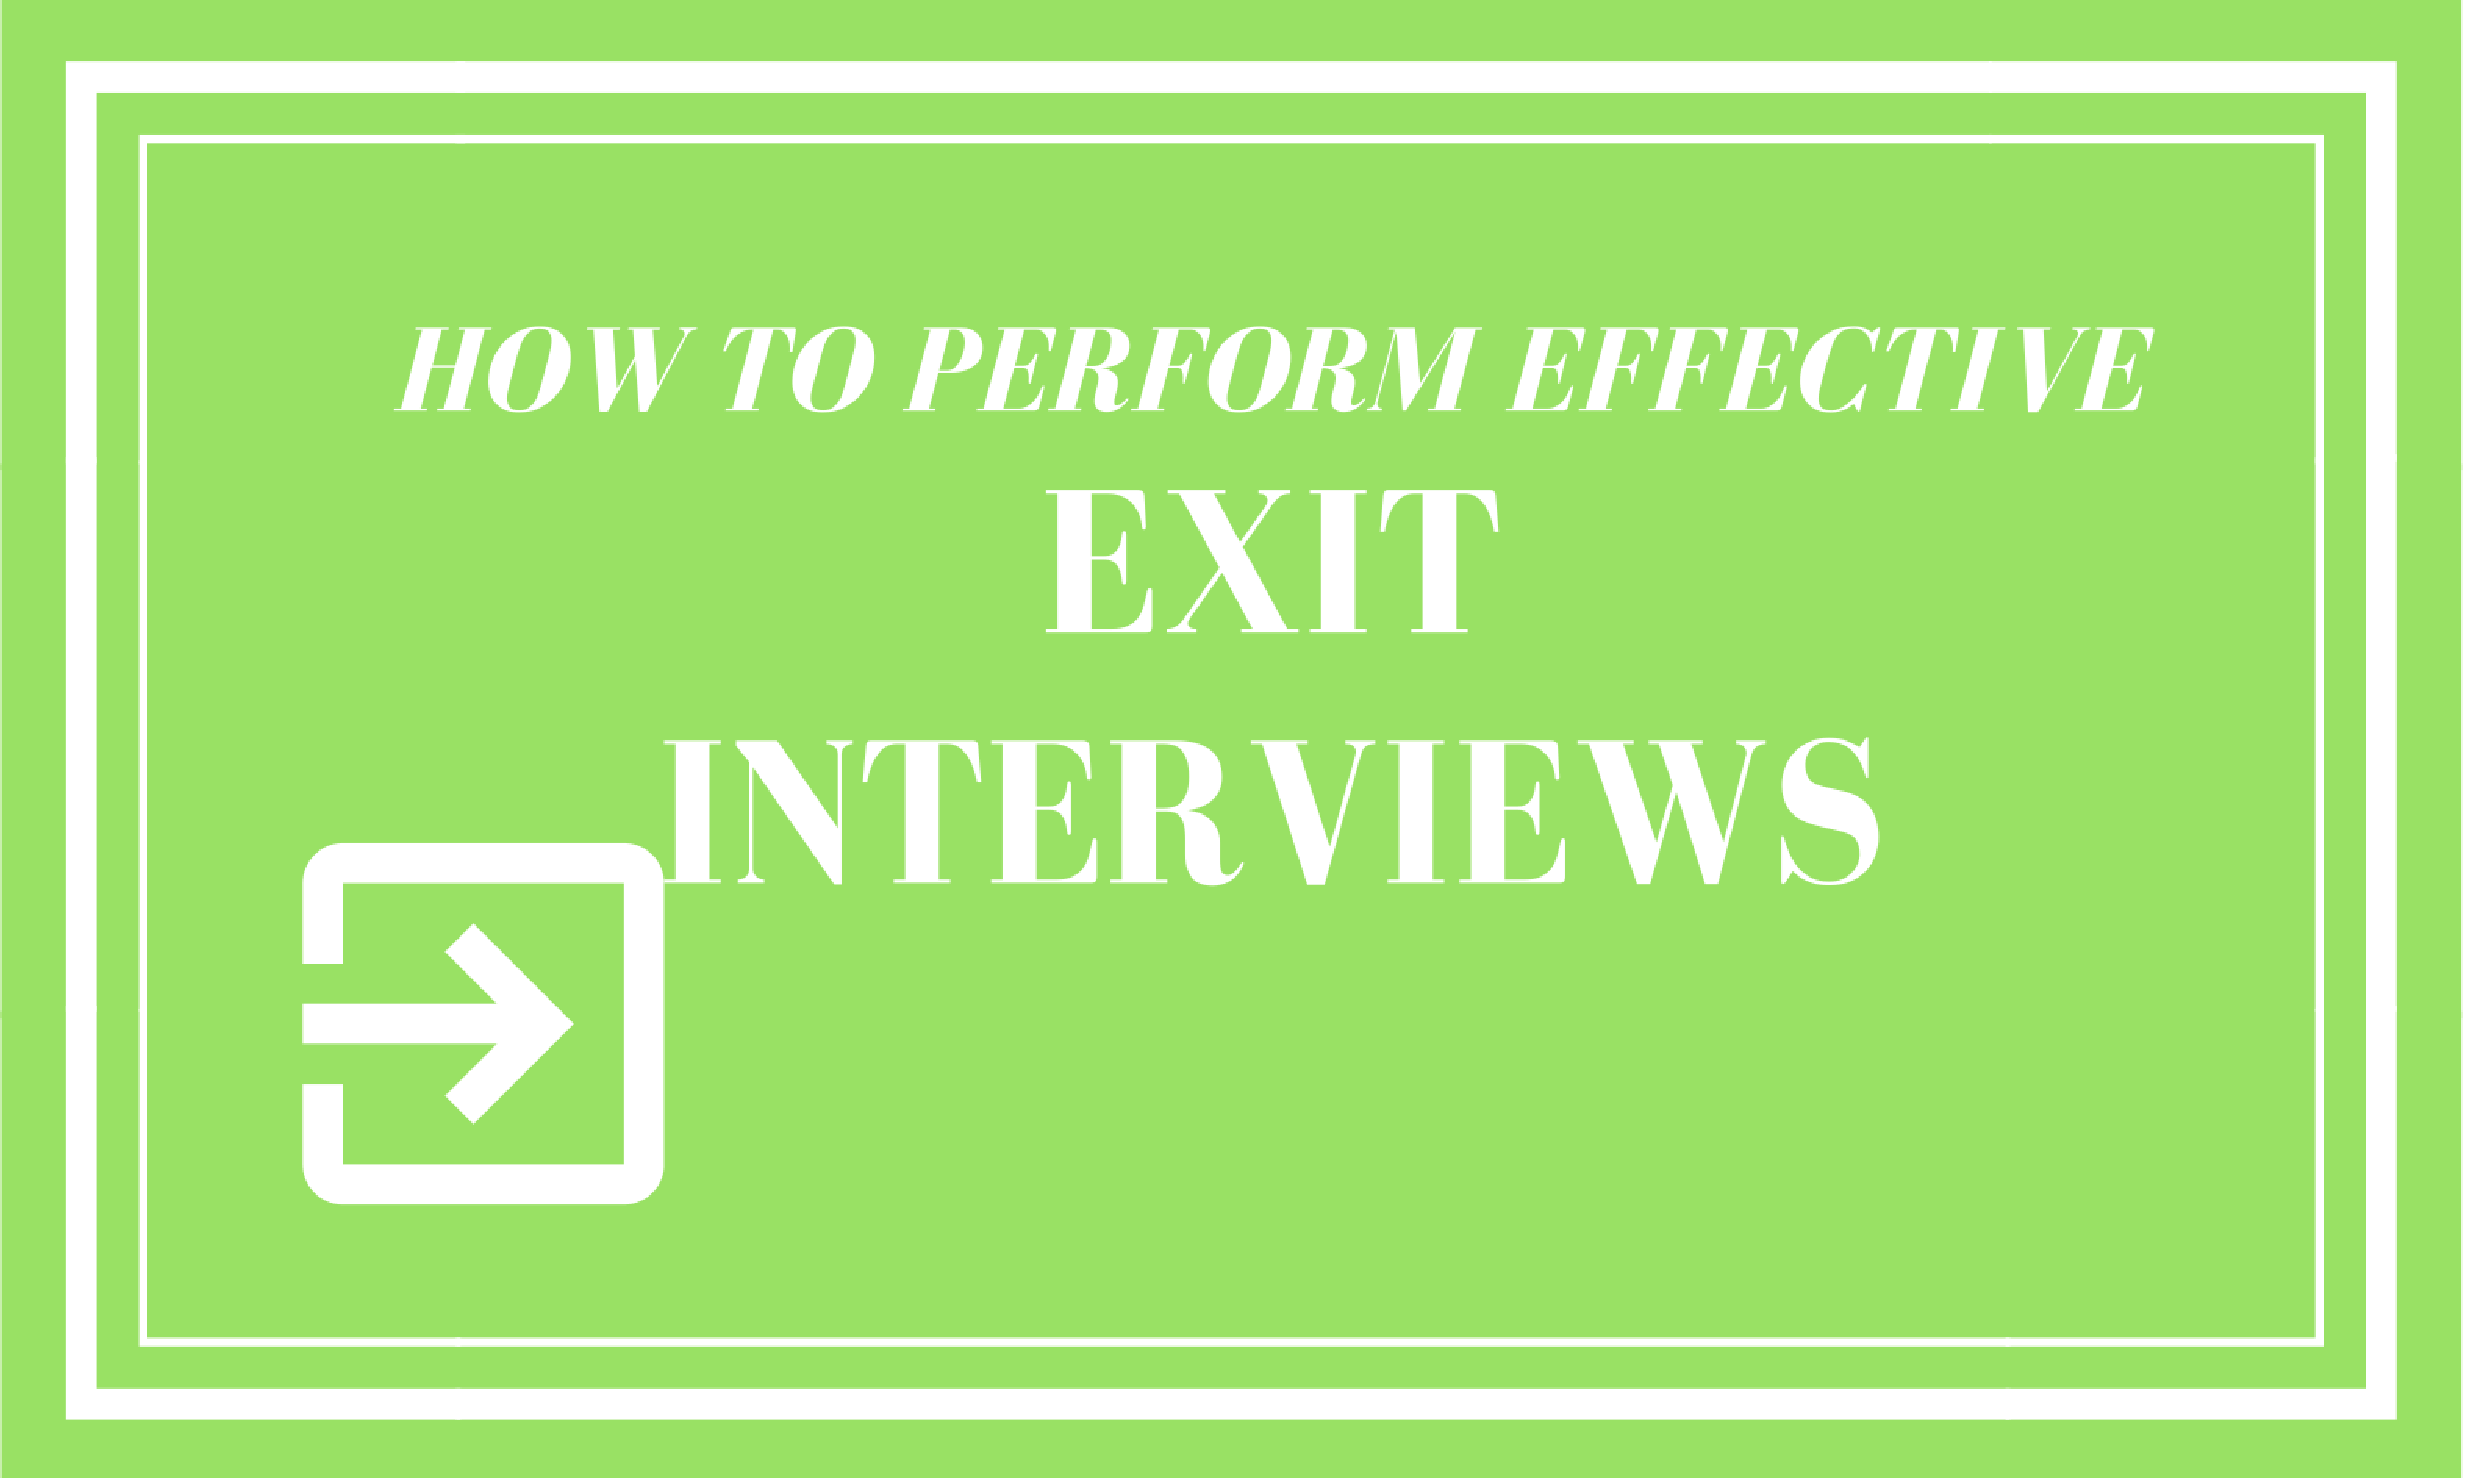 How To Perform Effective Exit Interviews For Employees